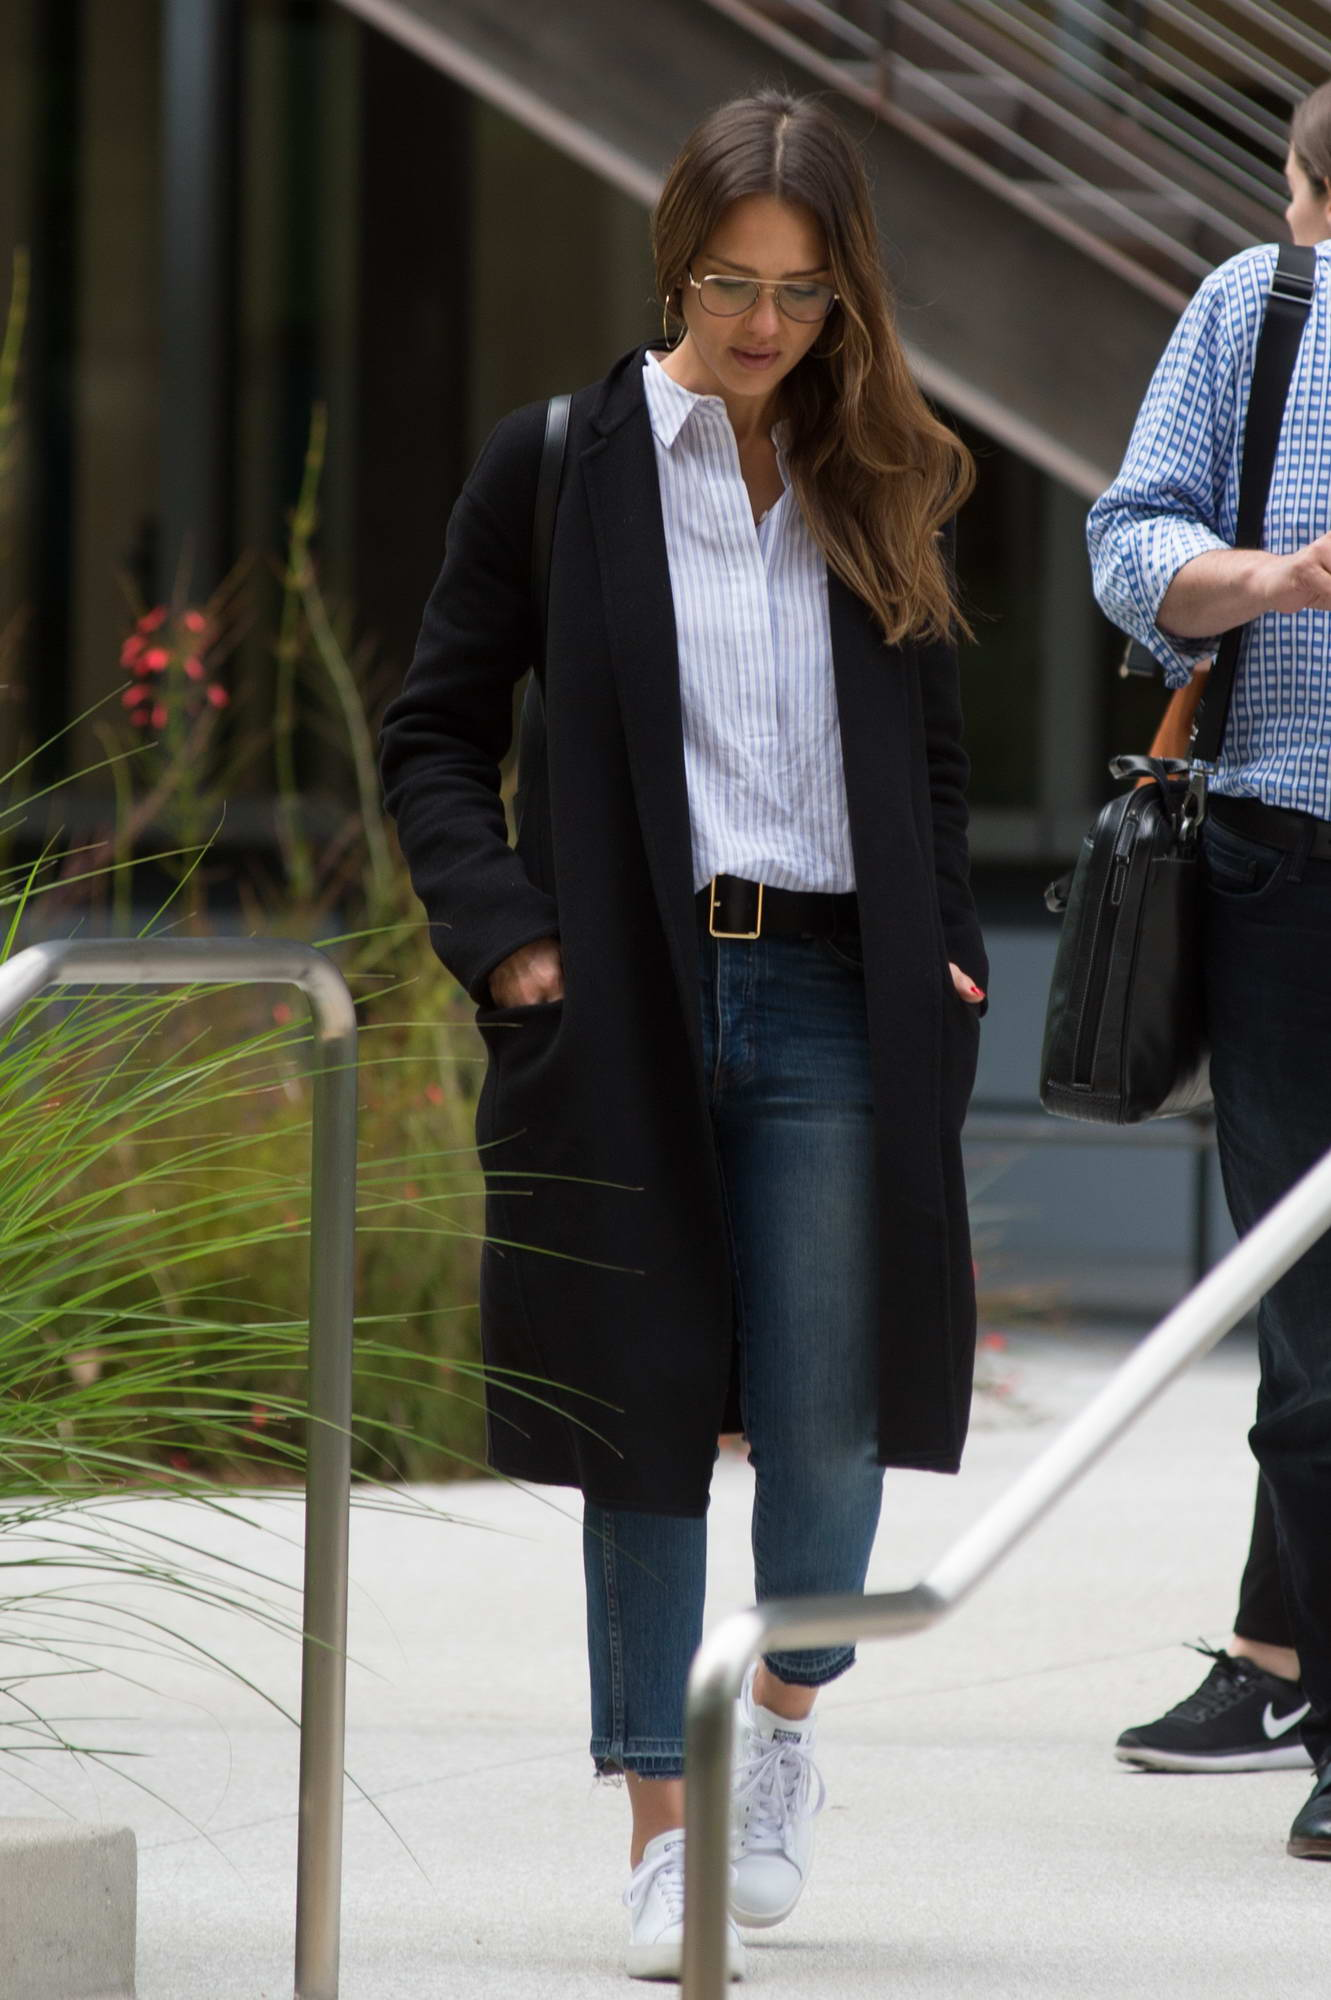 jessica alba spotted exiting an office building in los angeles-120517_8